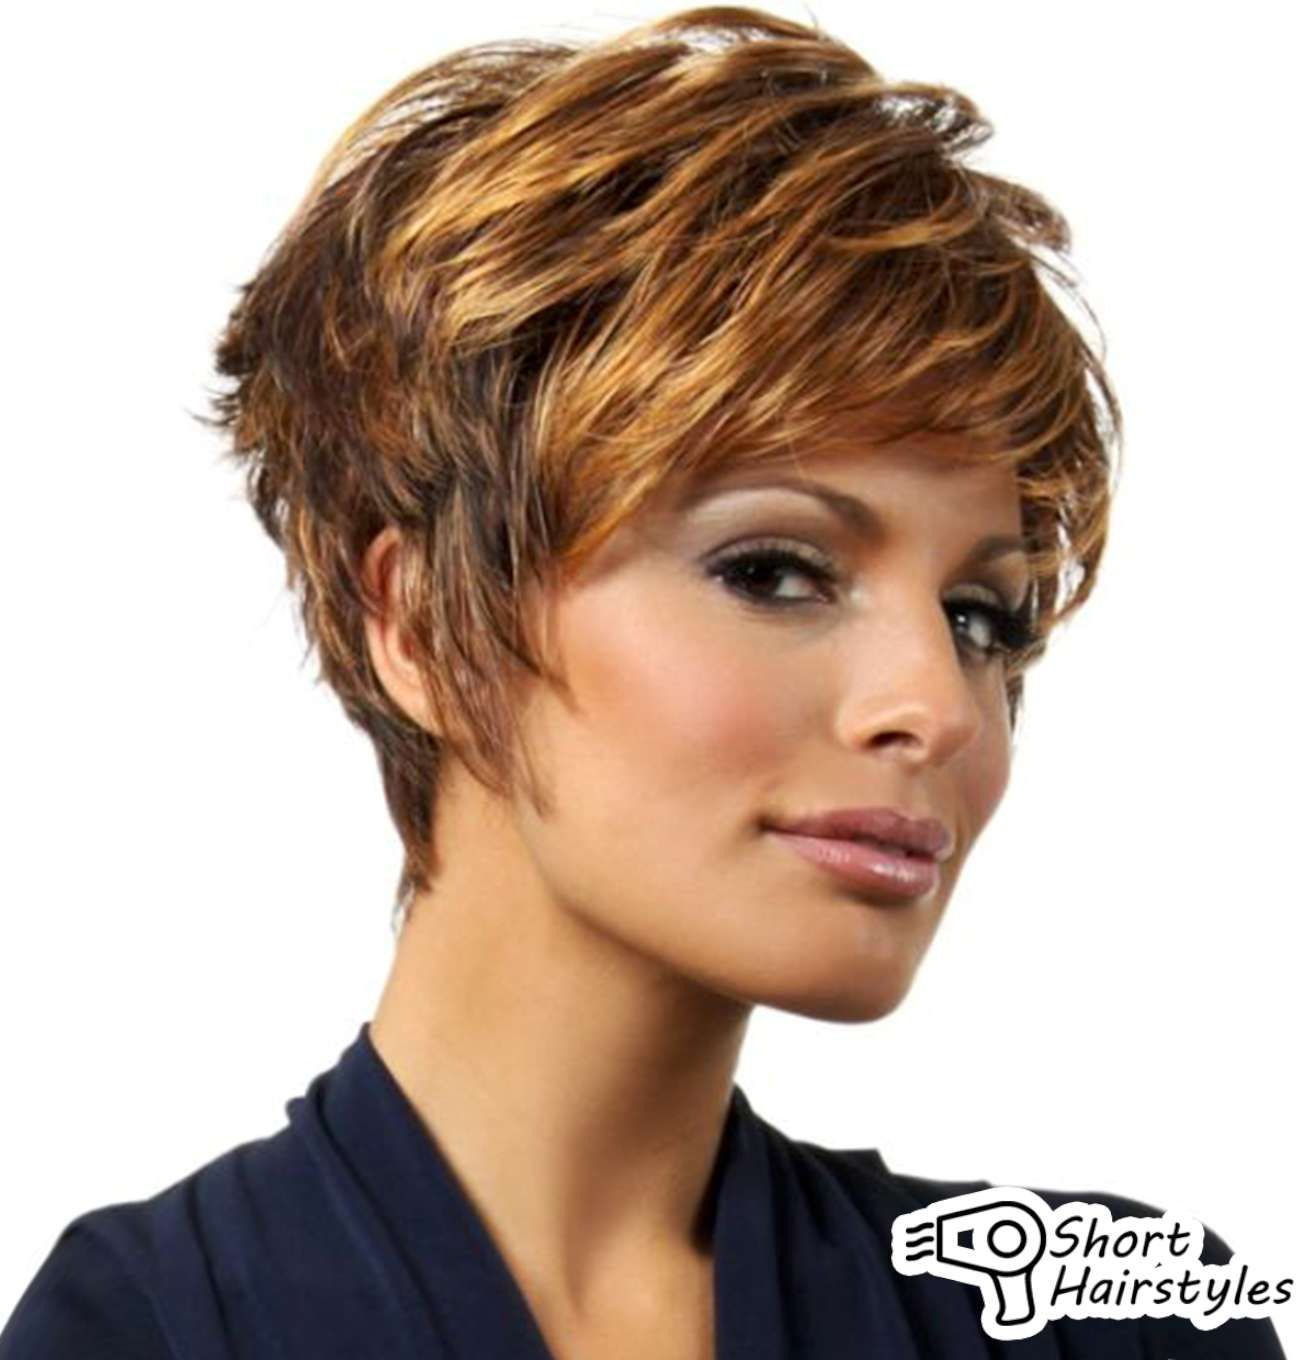 short hairstyles for thick hair 2015 is troublesome in terms